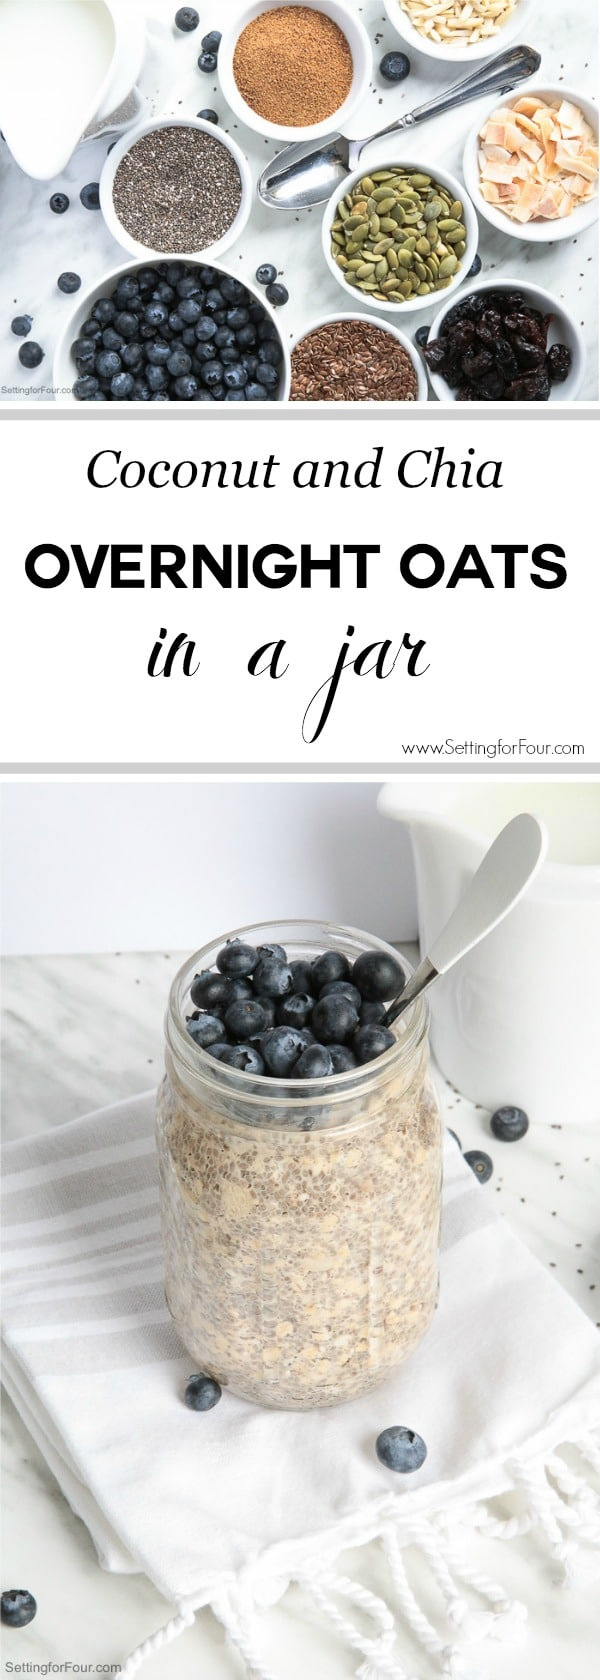 Coconut and Chia Overnight Oats In A Jar: Make this quick & yummy overnight oats recipe for a healthy breakfast or snack that's loaded with muscle-building protein and energy-boosting complex carbs. Grab and go - it's made in a mason jar! Naturally sweetened with organic coconut sugar that has a delicious brown sugar-like taste.